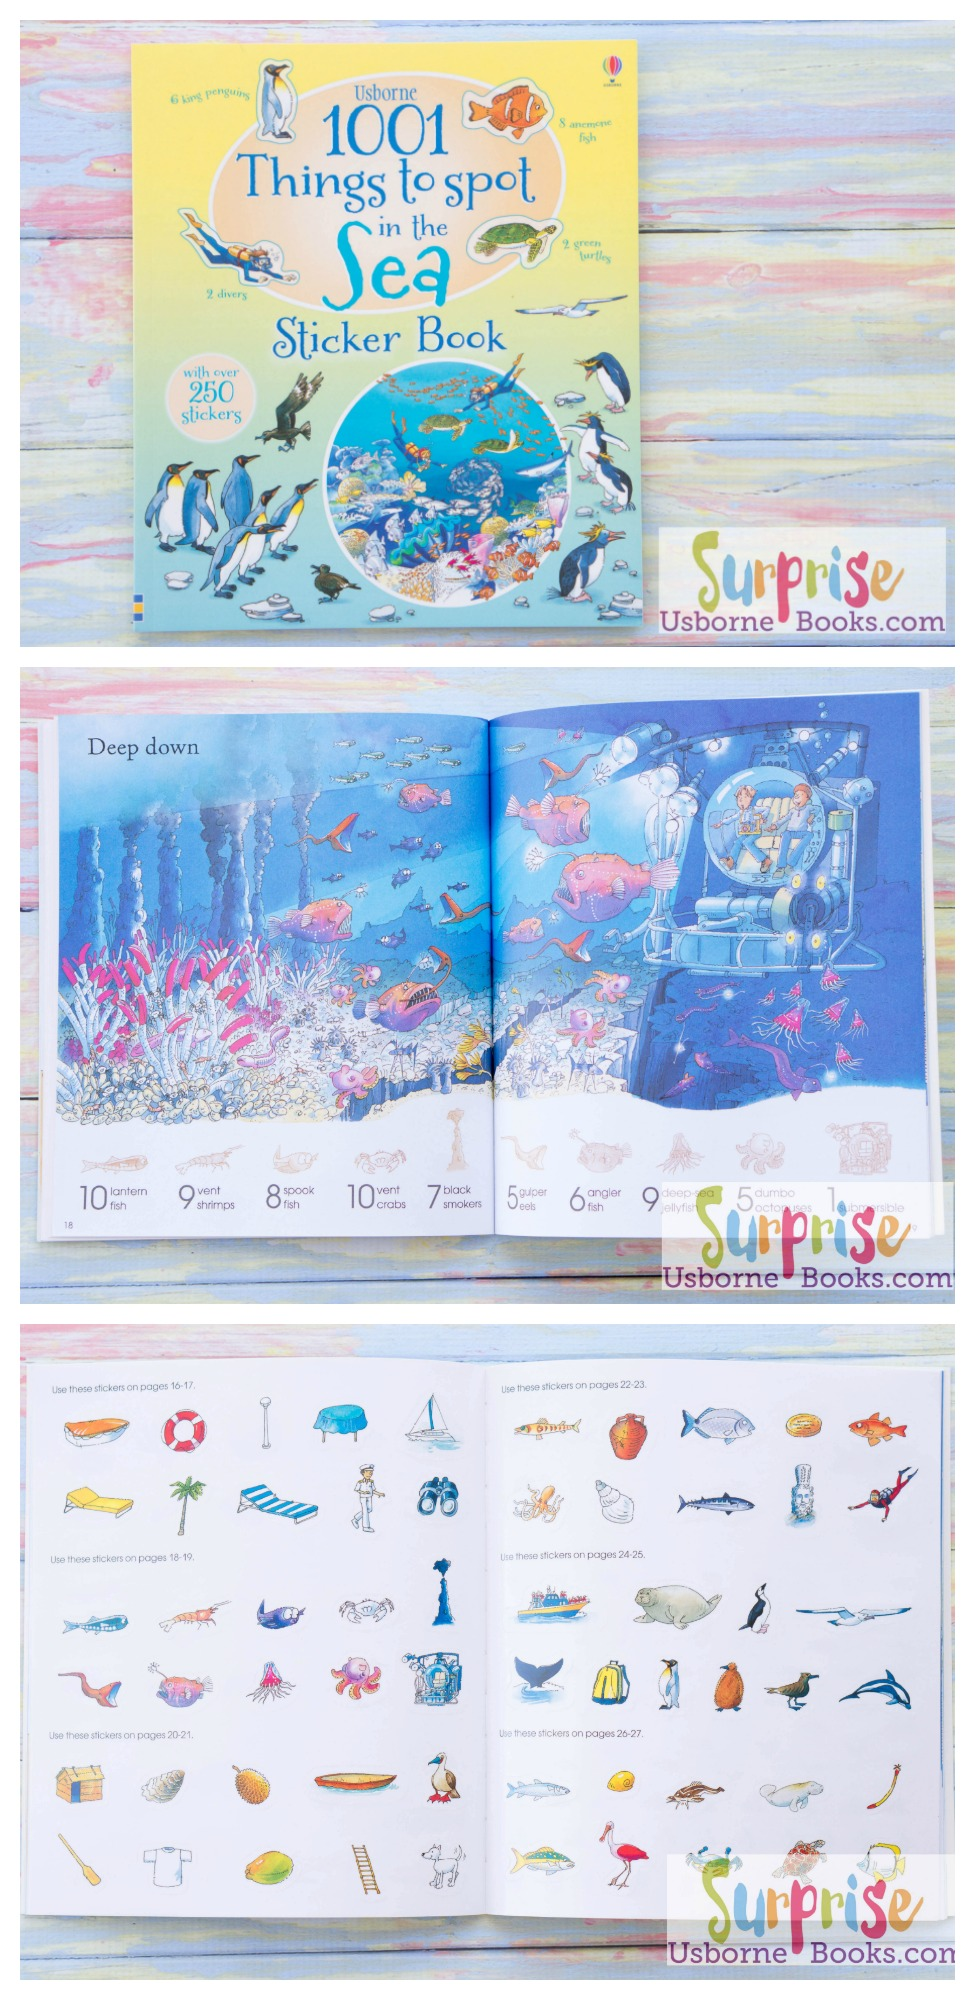 """Interactive sticker book full of busy, detailed illustrations. Items to spot within the main picture are shown in the border as silhouettes and each has a corresponding sticker which children can find, match and add in the correct place. With over a thousand things for children to find, count and talk about."" - 1001 Things to Spot in the Sea Sticker Book - https://z4065.myubam.com/p/5015/1001-things-to-spot-in-the-sea-sticker-book"